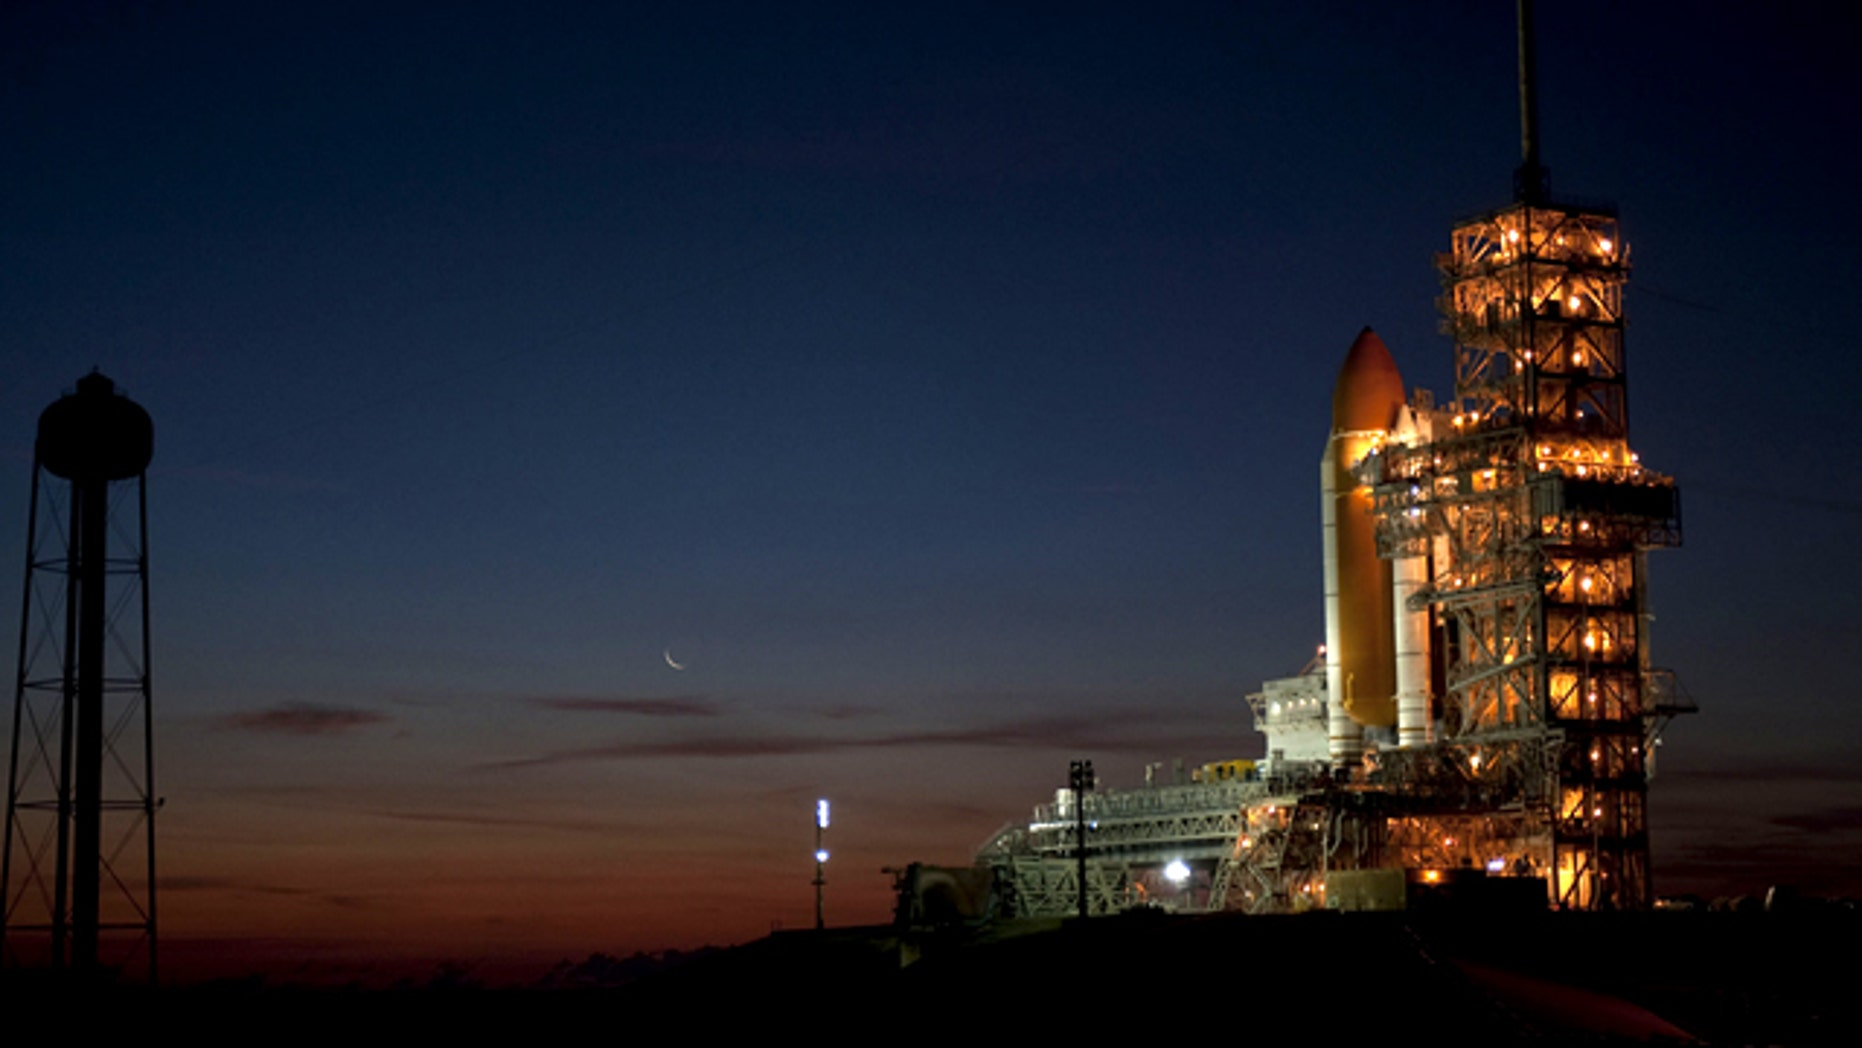 Space shuttle Discovery stands at Launch Pad 39A at NASA's Kennedy Space Center on Feb. 1, 2011 following its rollout from the Vehicle Assembly Building. The shuttle is due to launch on its final mission on Feb. 24.